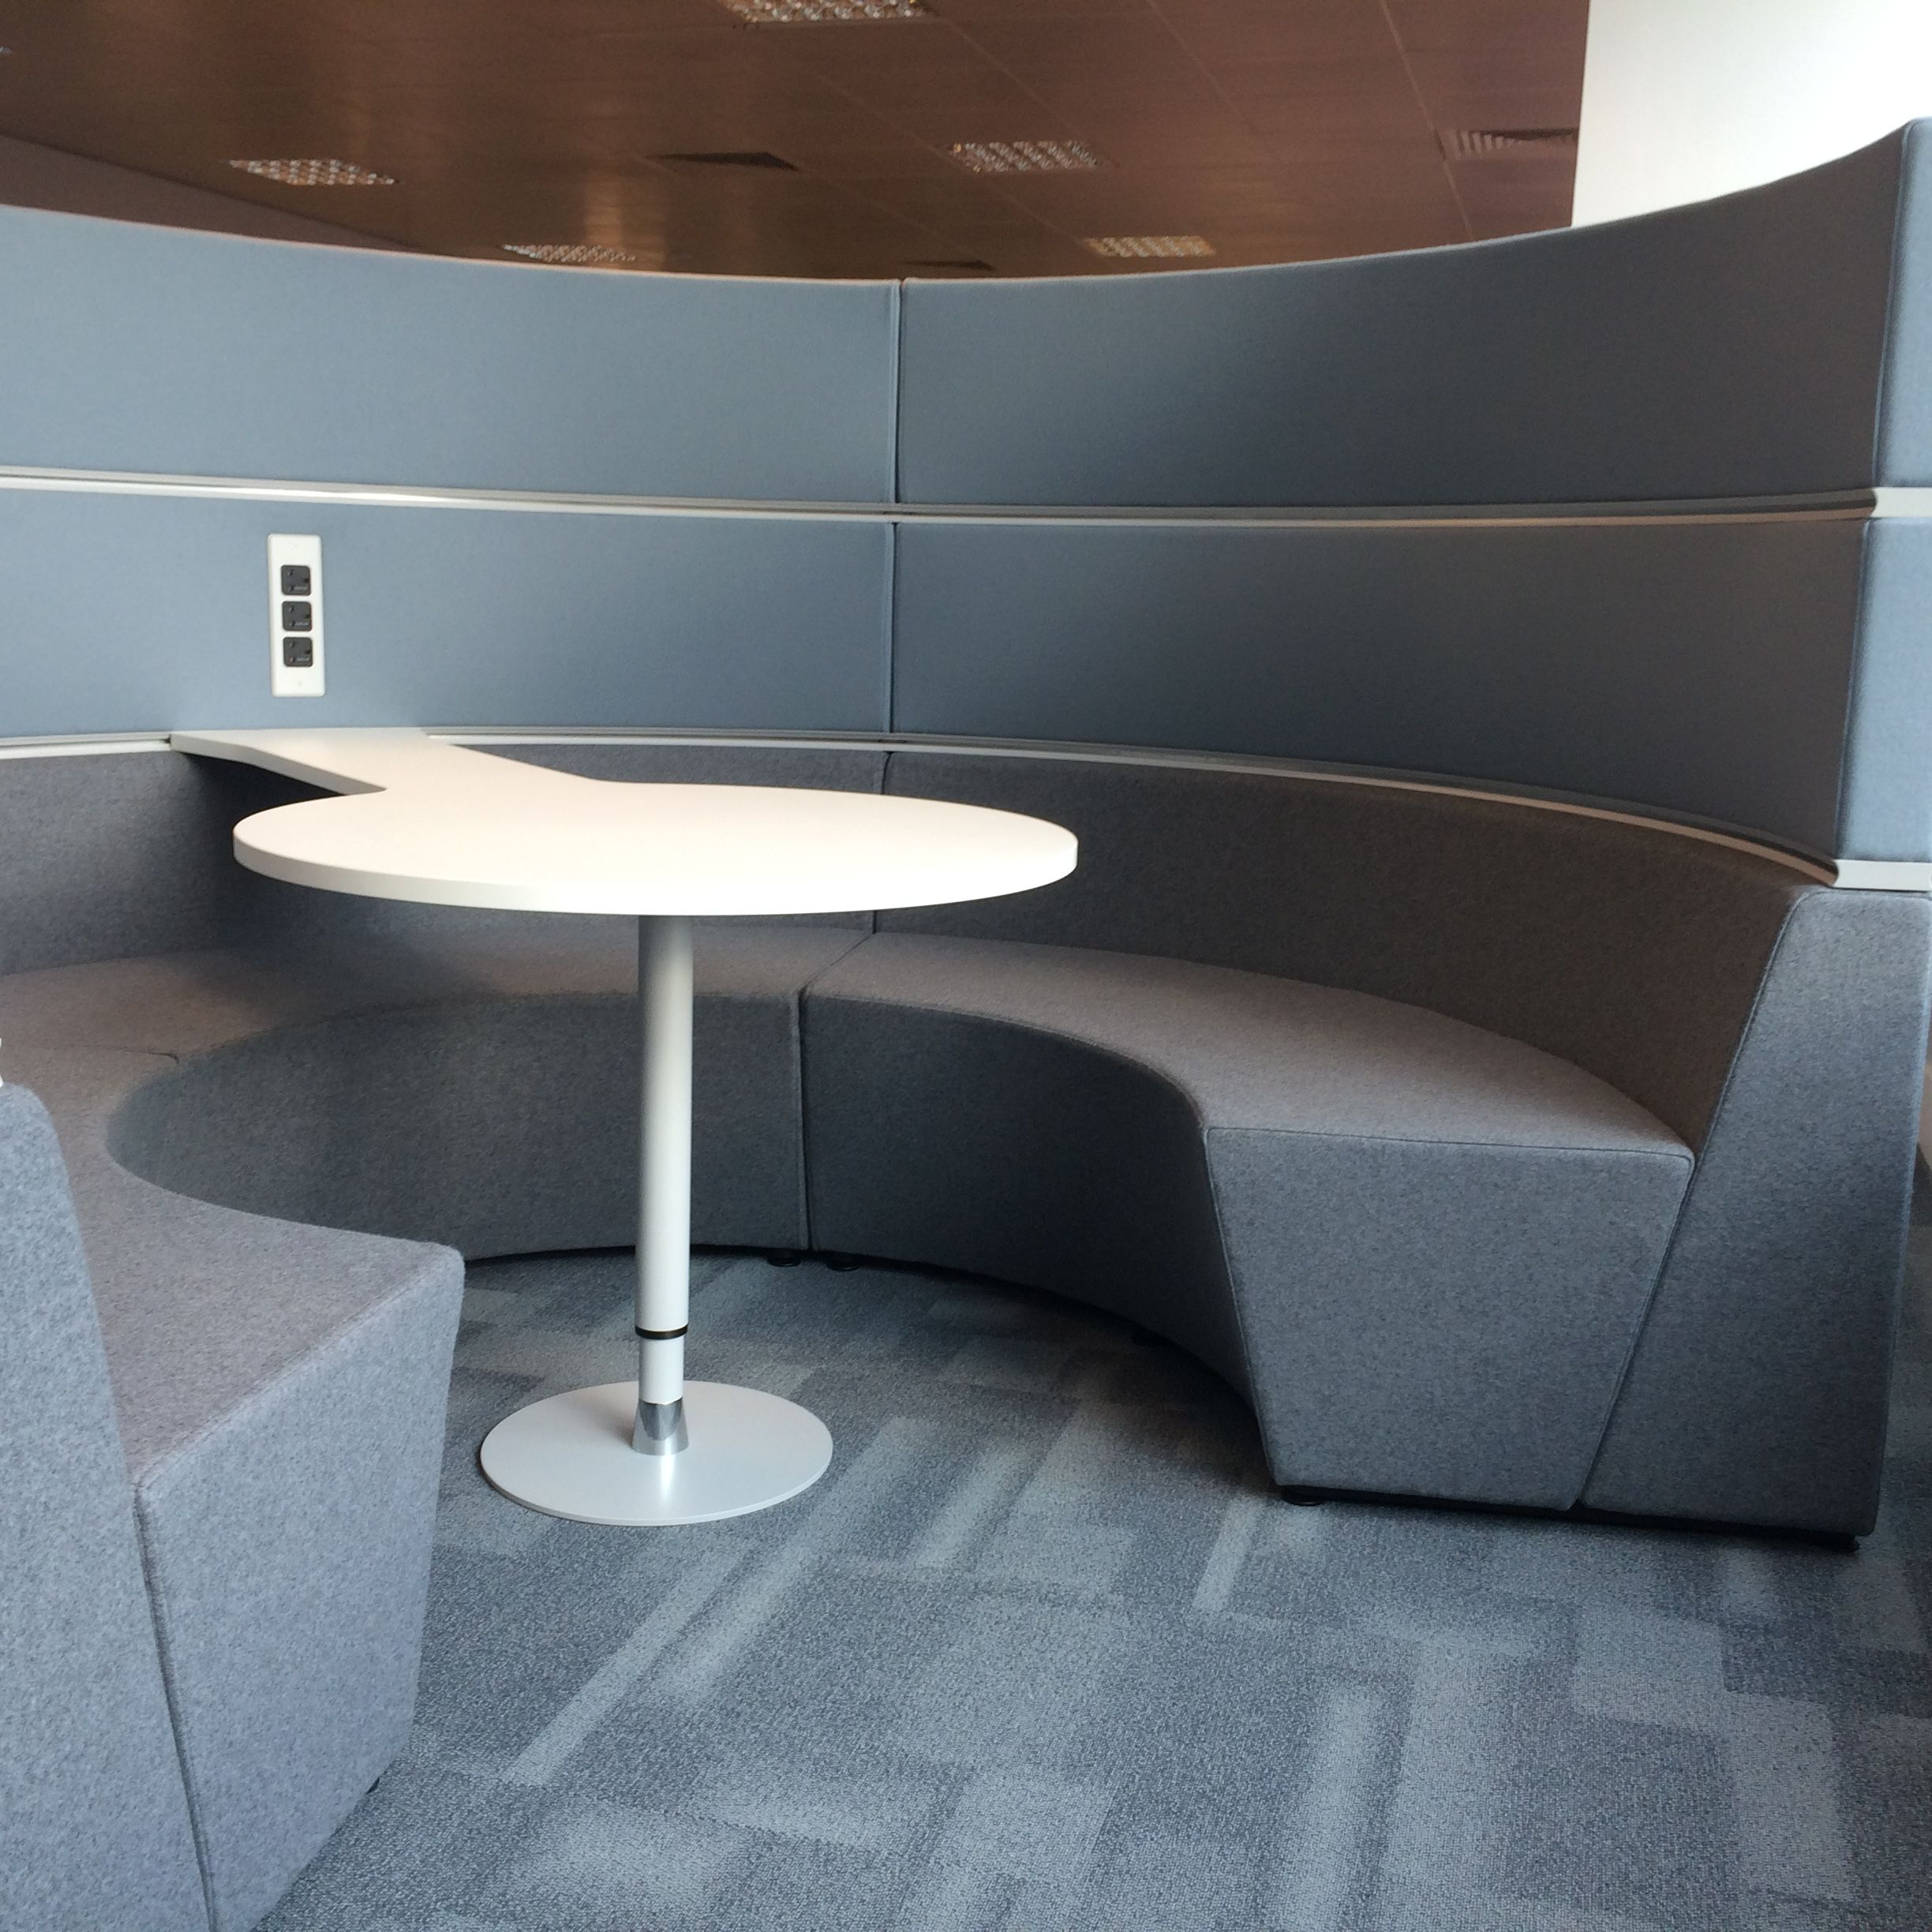 Creed Miles Installed Various Away From The Desk E Agile Working Areas Into London Office